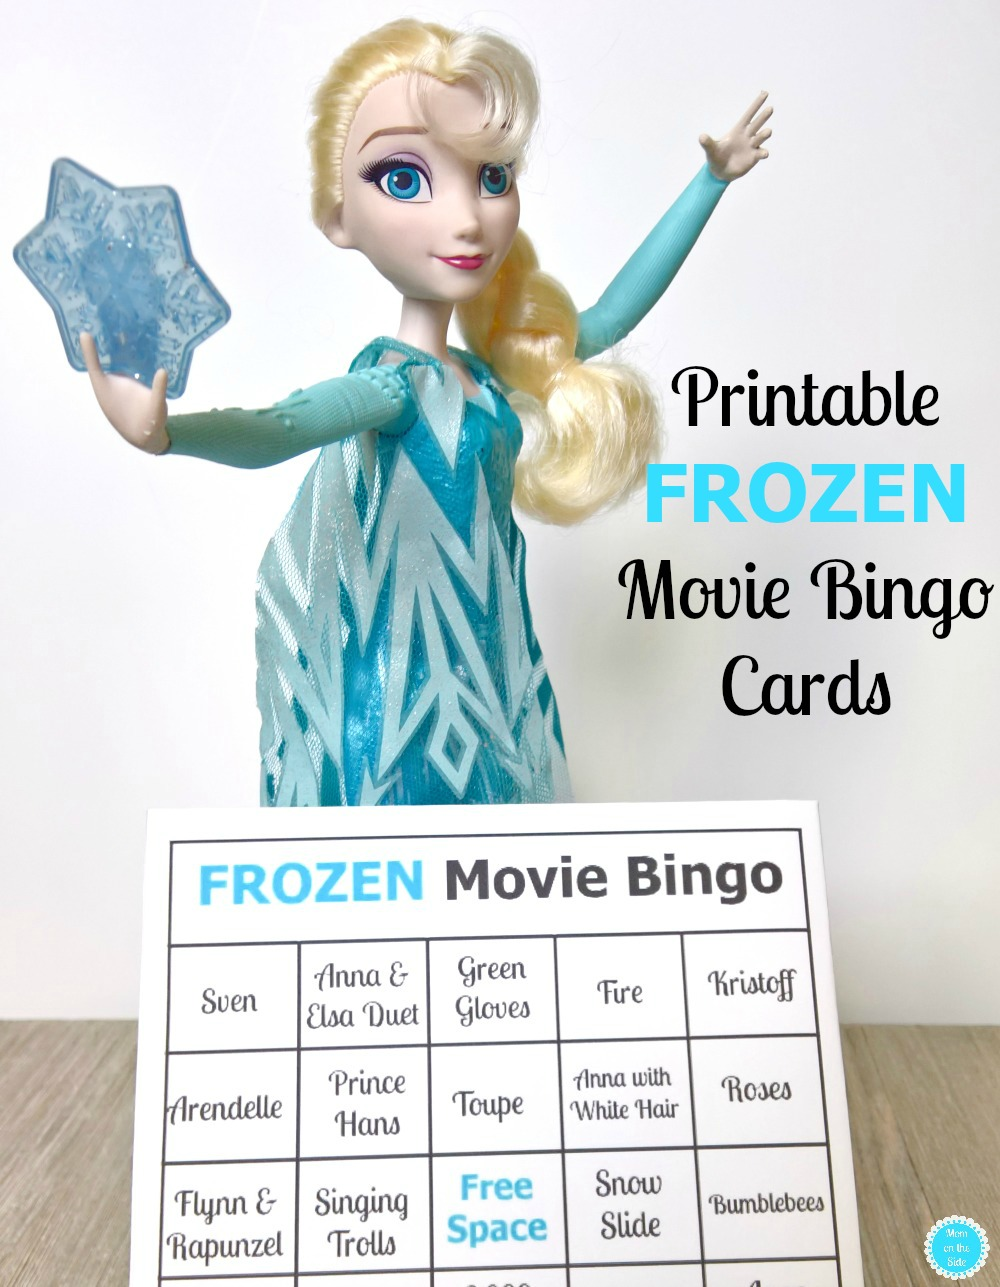 Grab these printable Disney's Frozen Movie Bingo cards and pick up the new Snow Powers Elsa Doll for a fun family movie night!